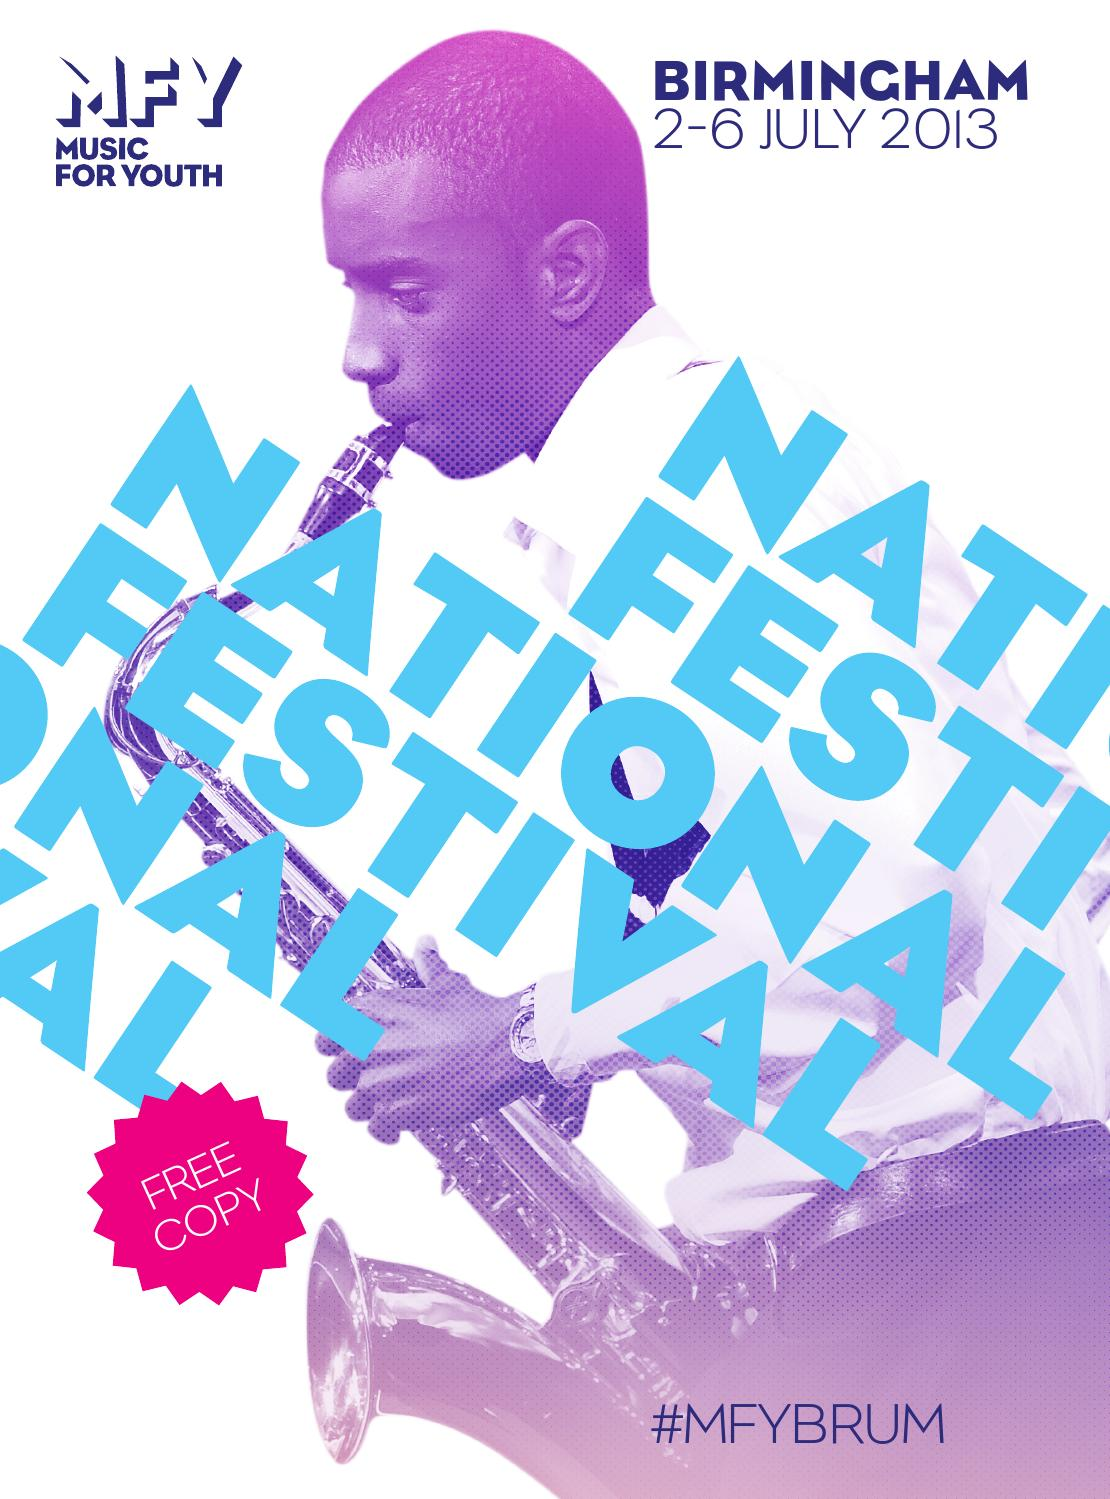 National Festival Birmingham Programme 2013 by Music for Youth - issuu